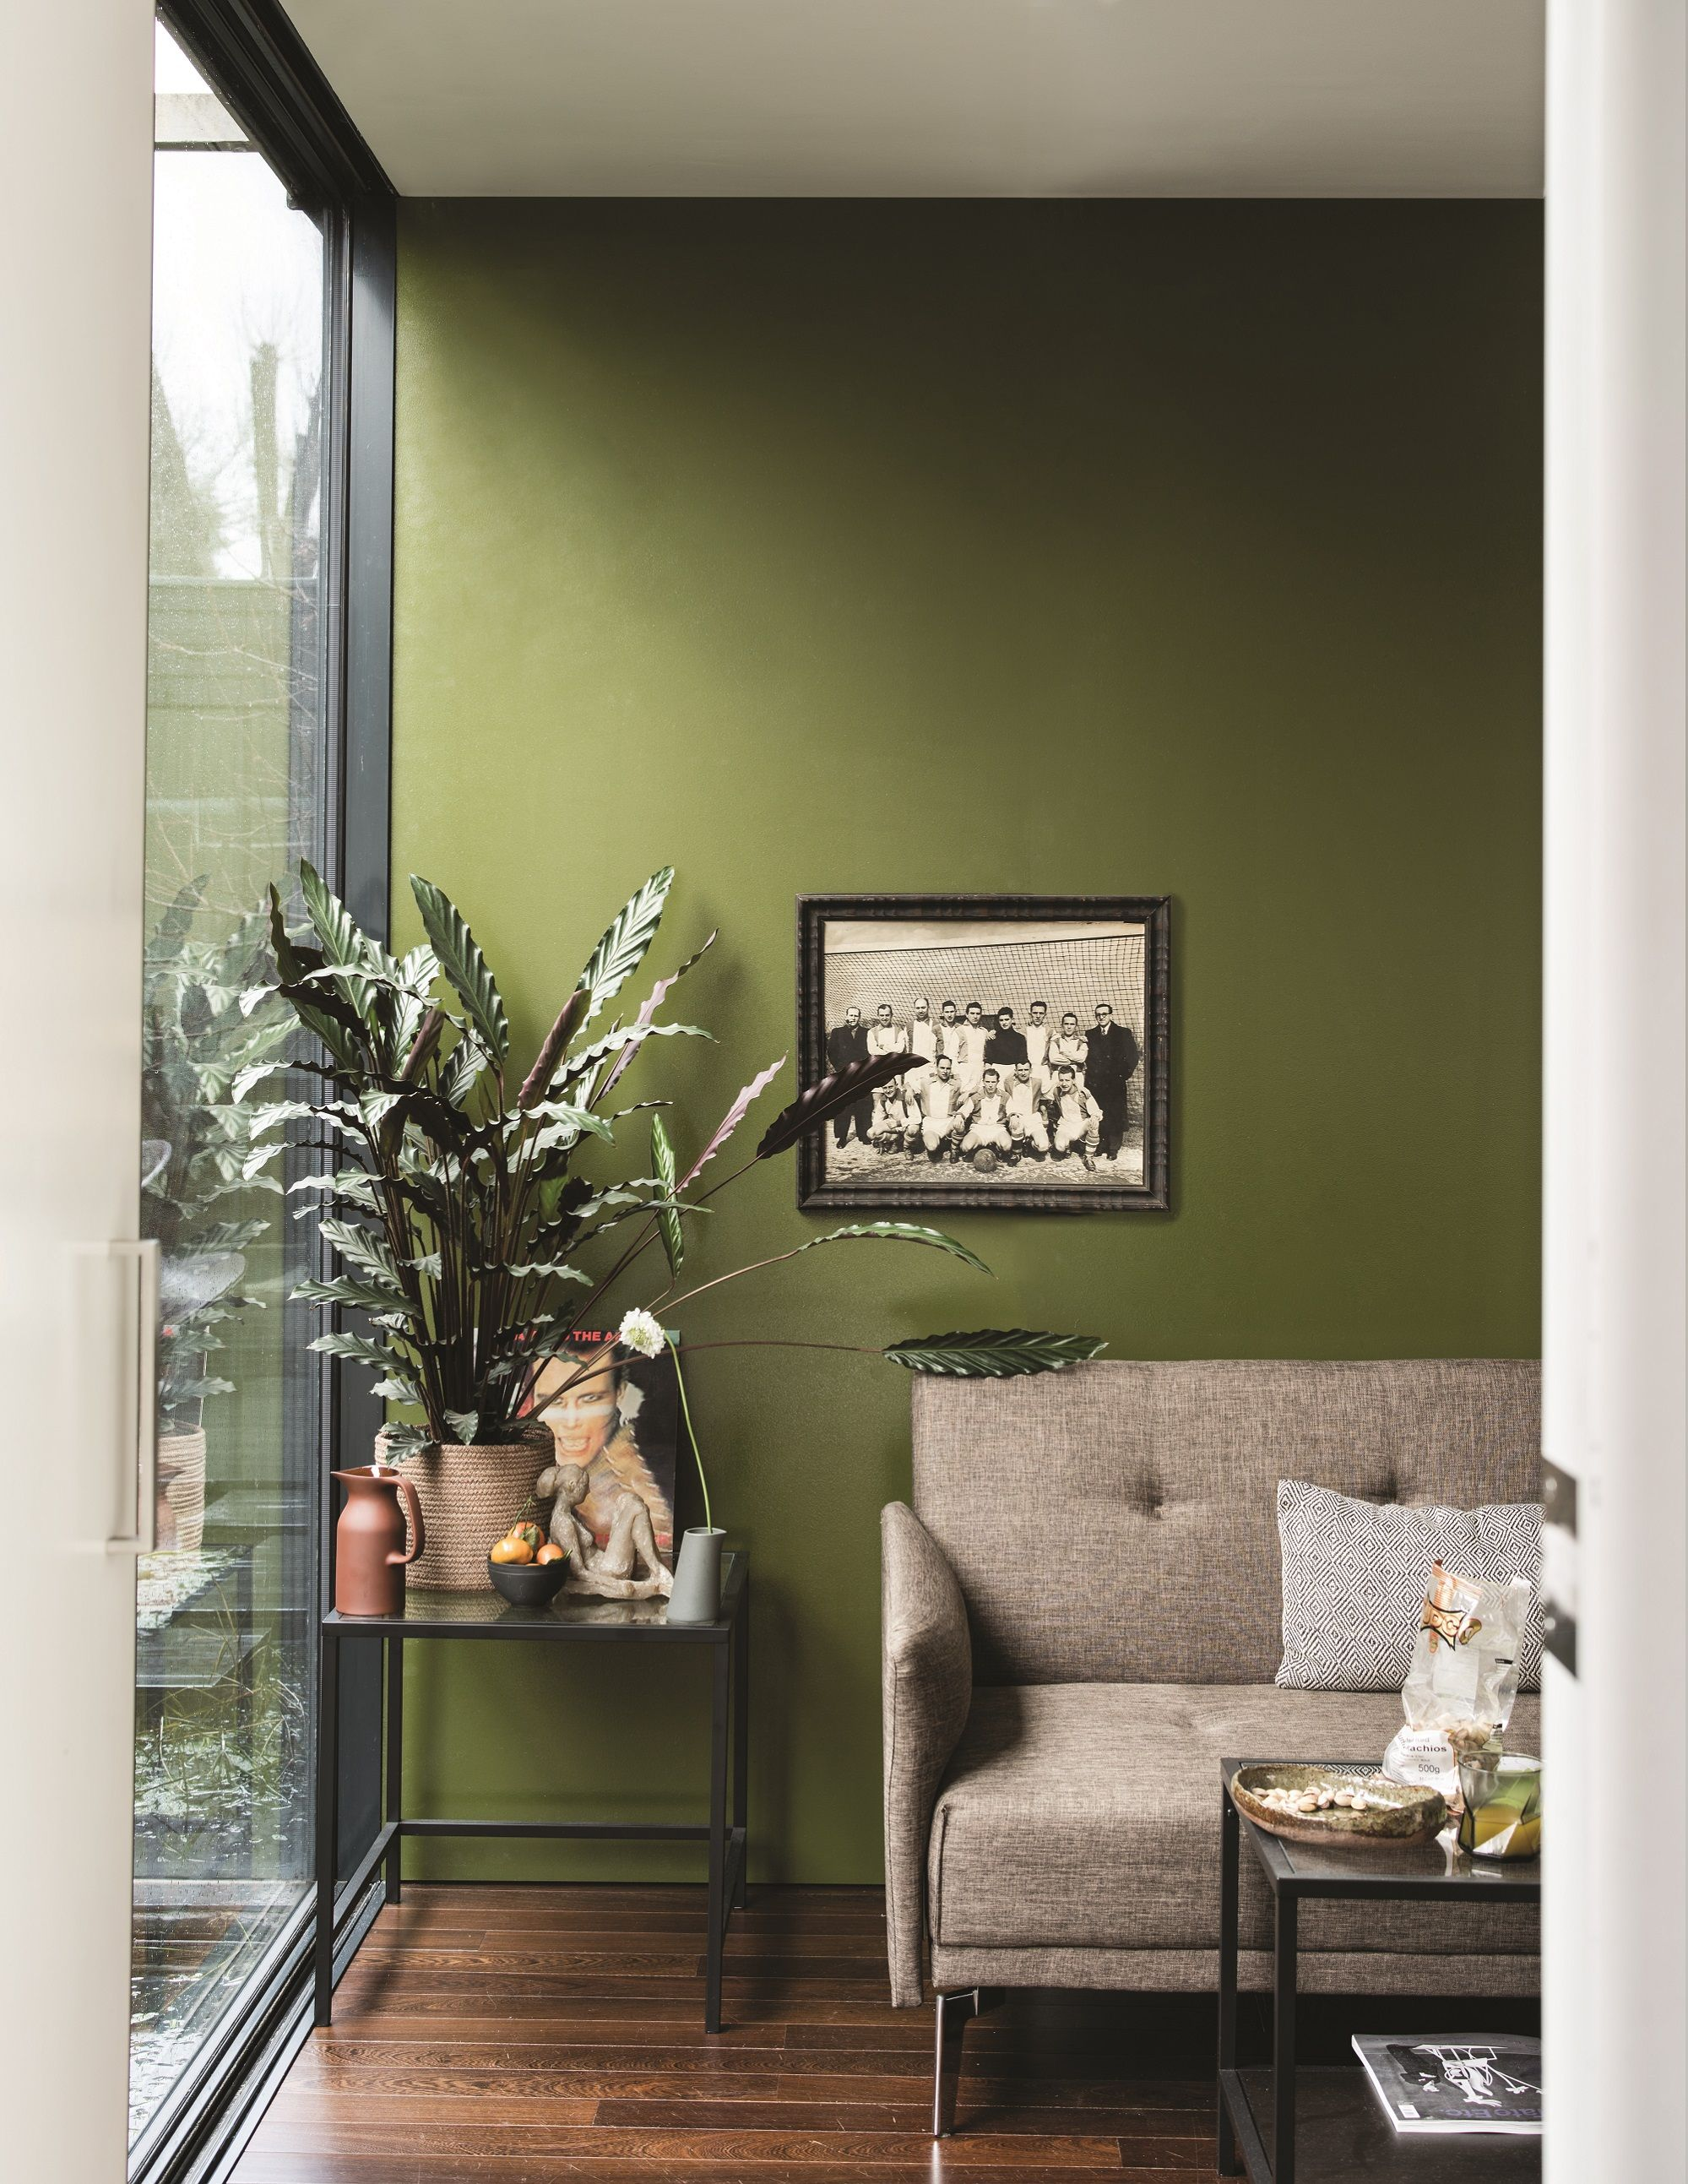 Explore The New Paint Shades From Iba18 Sponsor Farrow Ball Interior Blog Awards Paint Colors For Living Room Living Room Colors Living Room Green Olive green paint living room